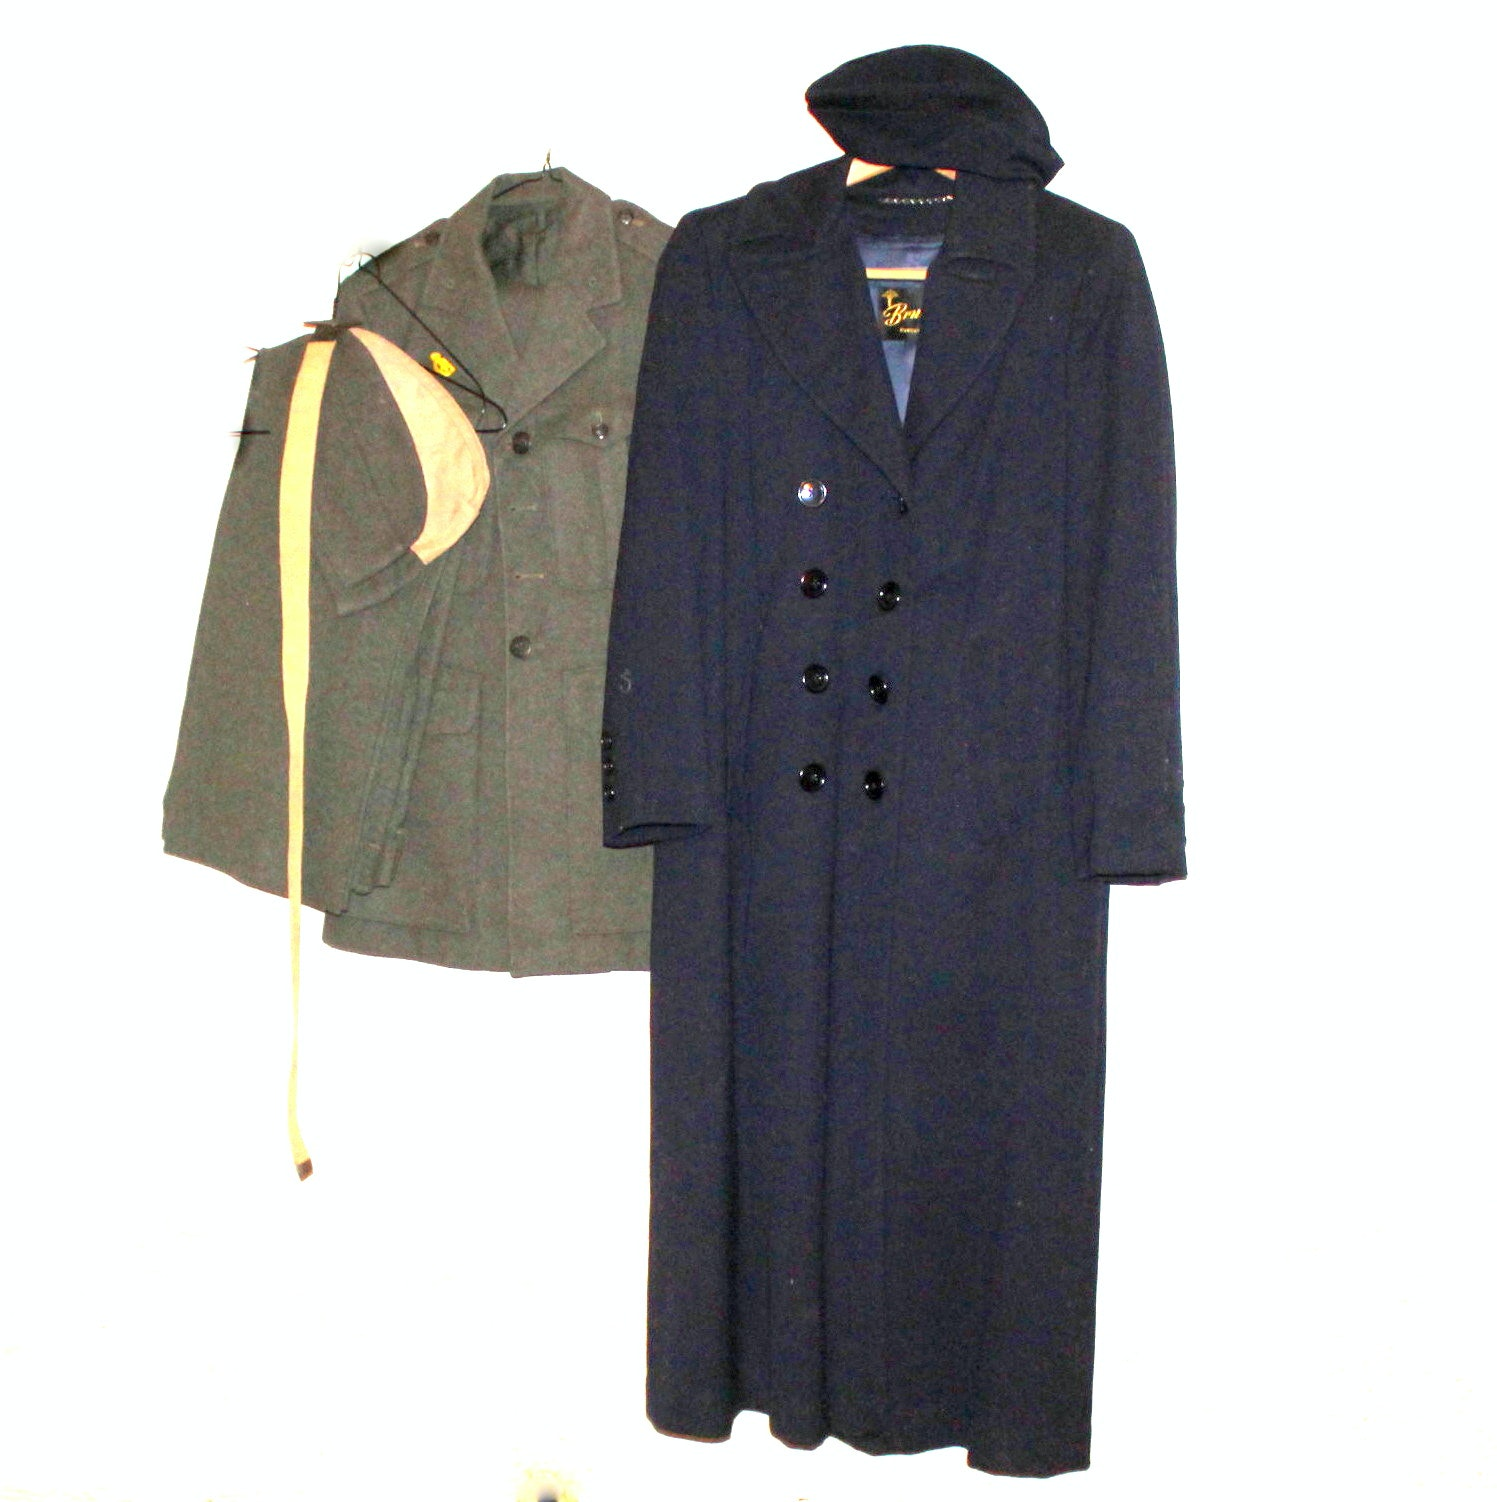 Vintage Marine Corps Uniform and Nurse's Coat